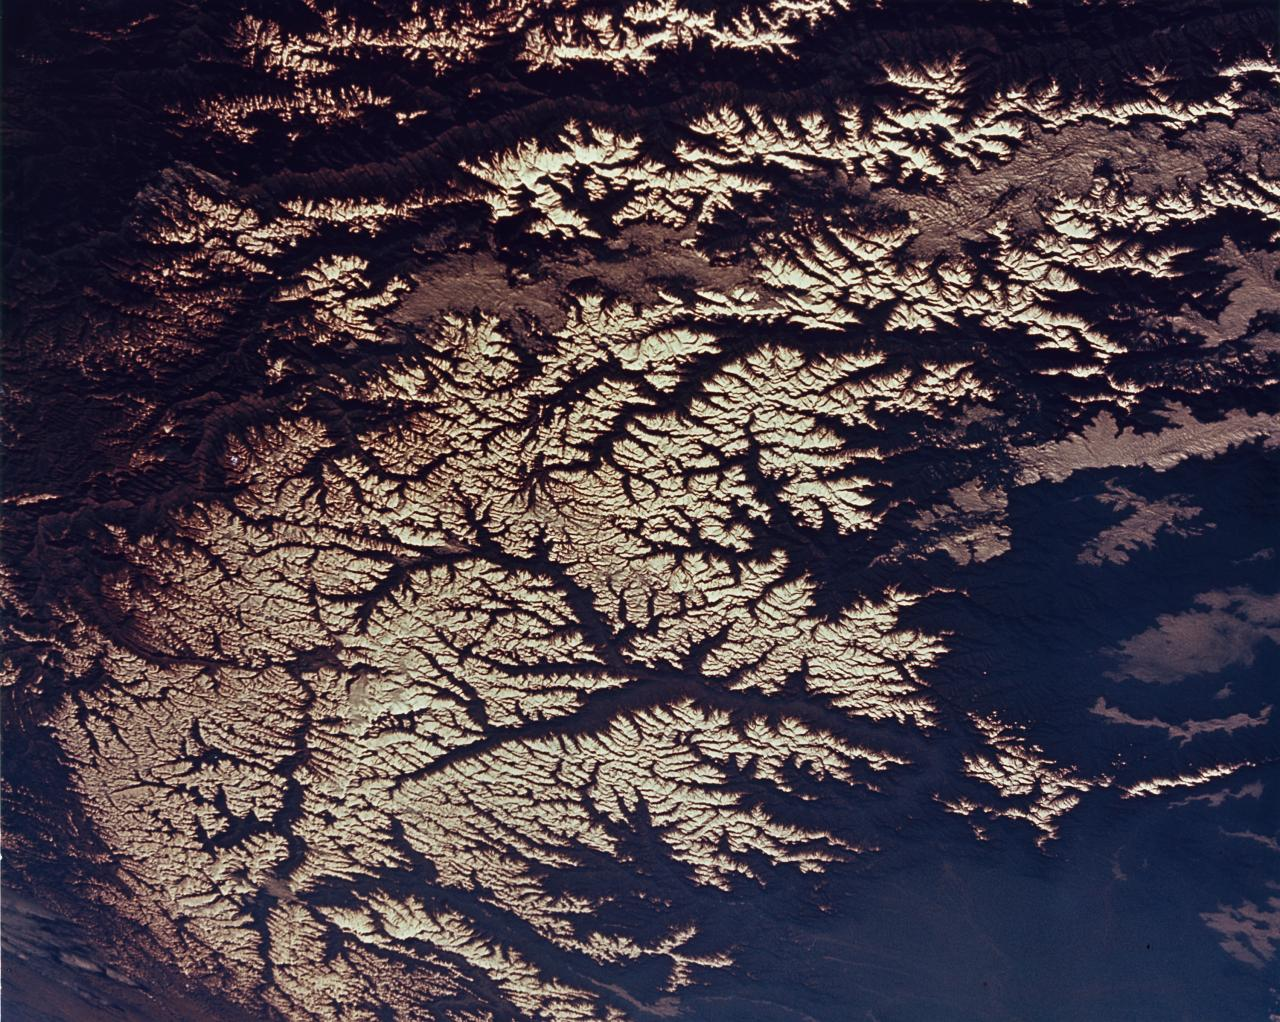 Astronauts view of the Hindu Kush range in the Himalayas